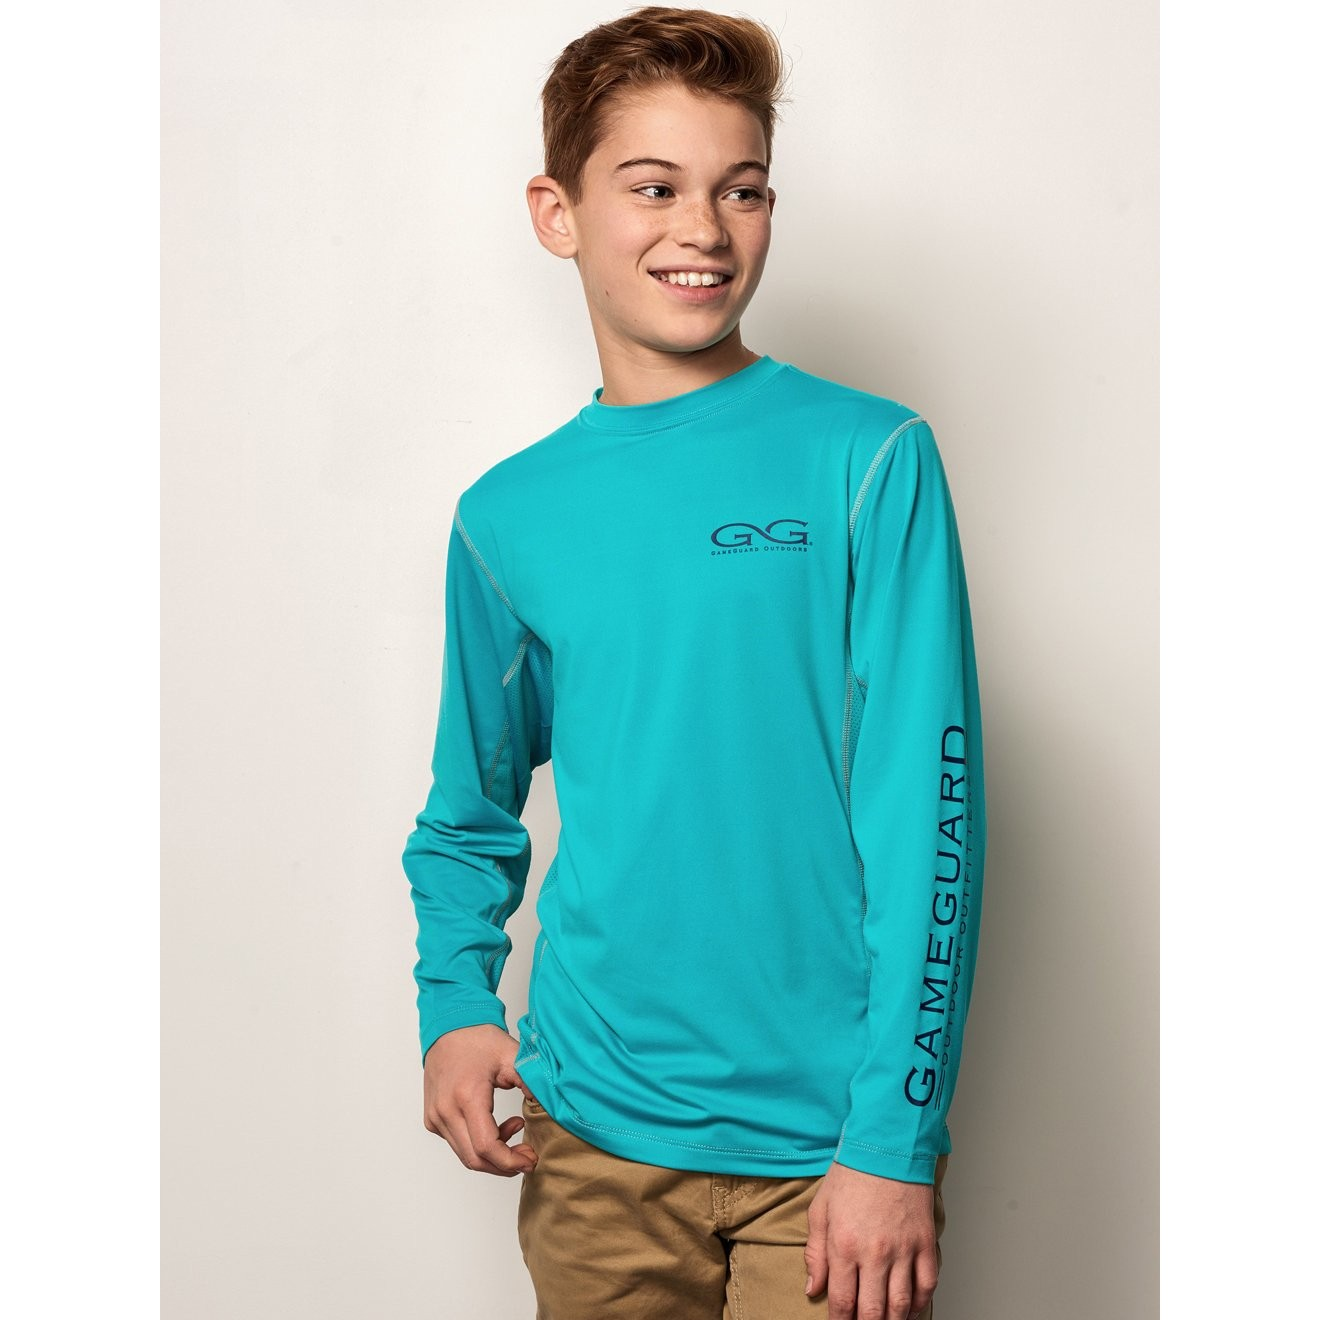 GameGuard Youth Caribbean Long Sleeve Performance Tee